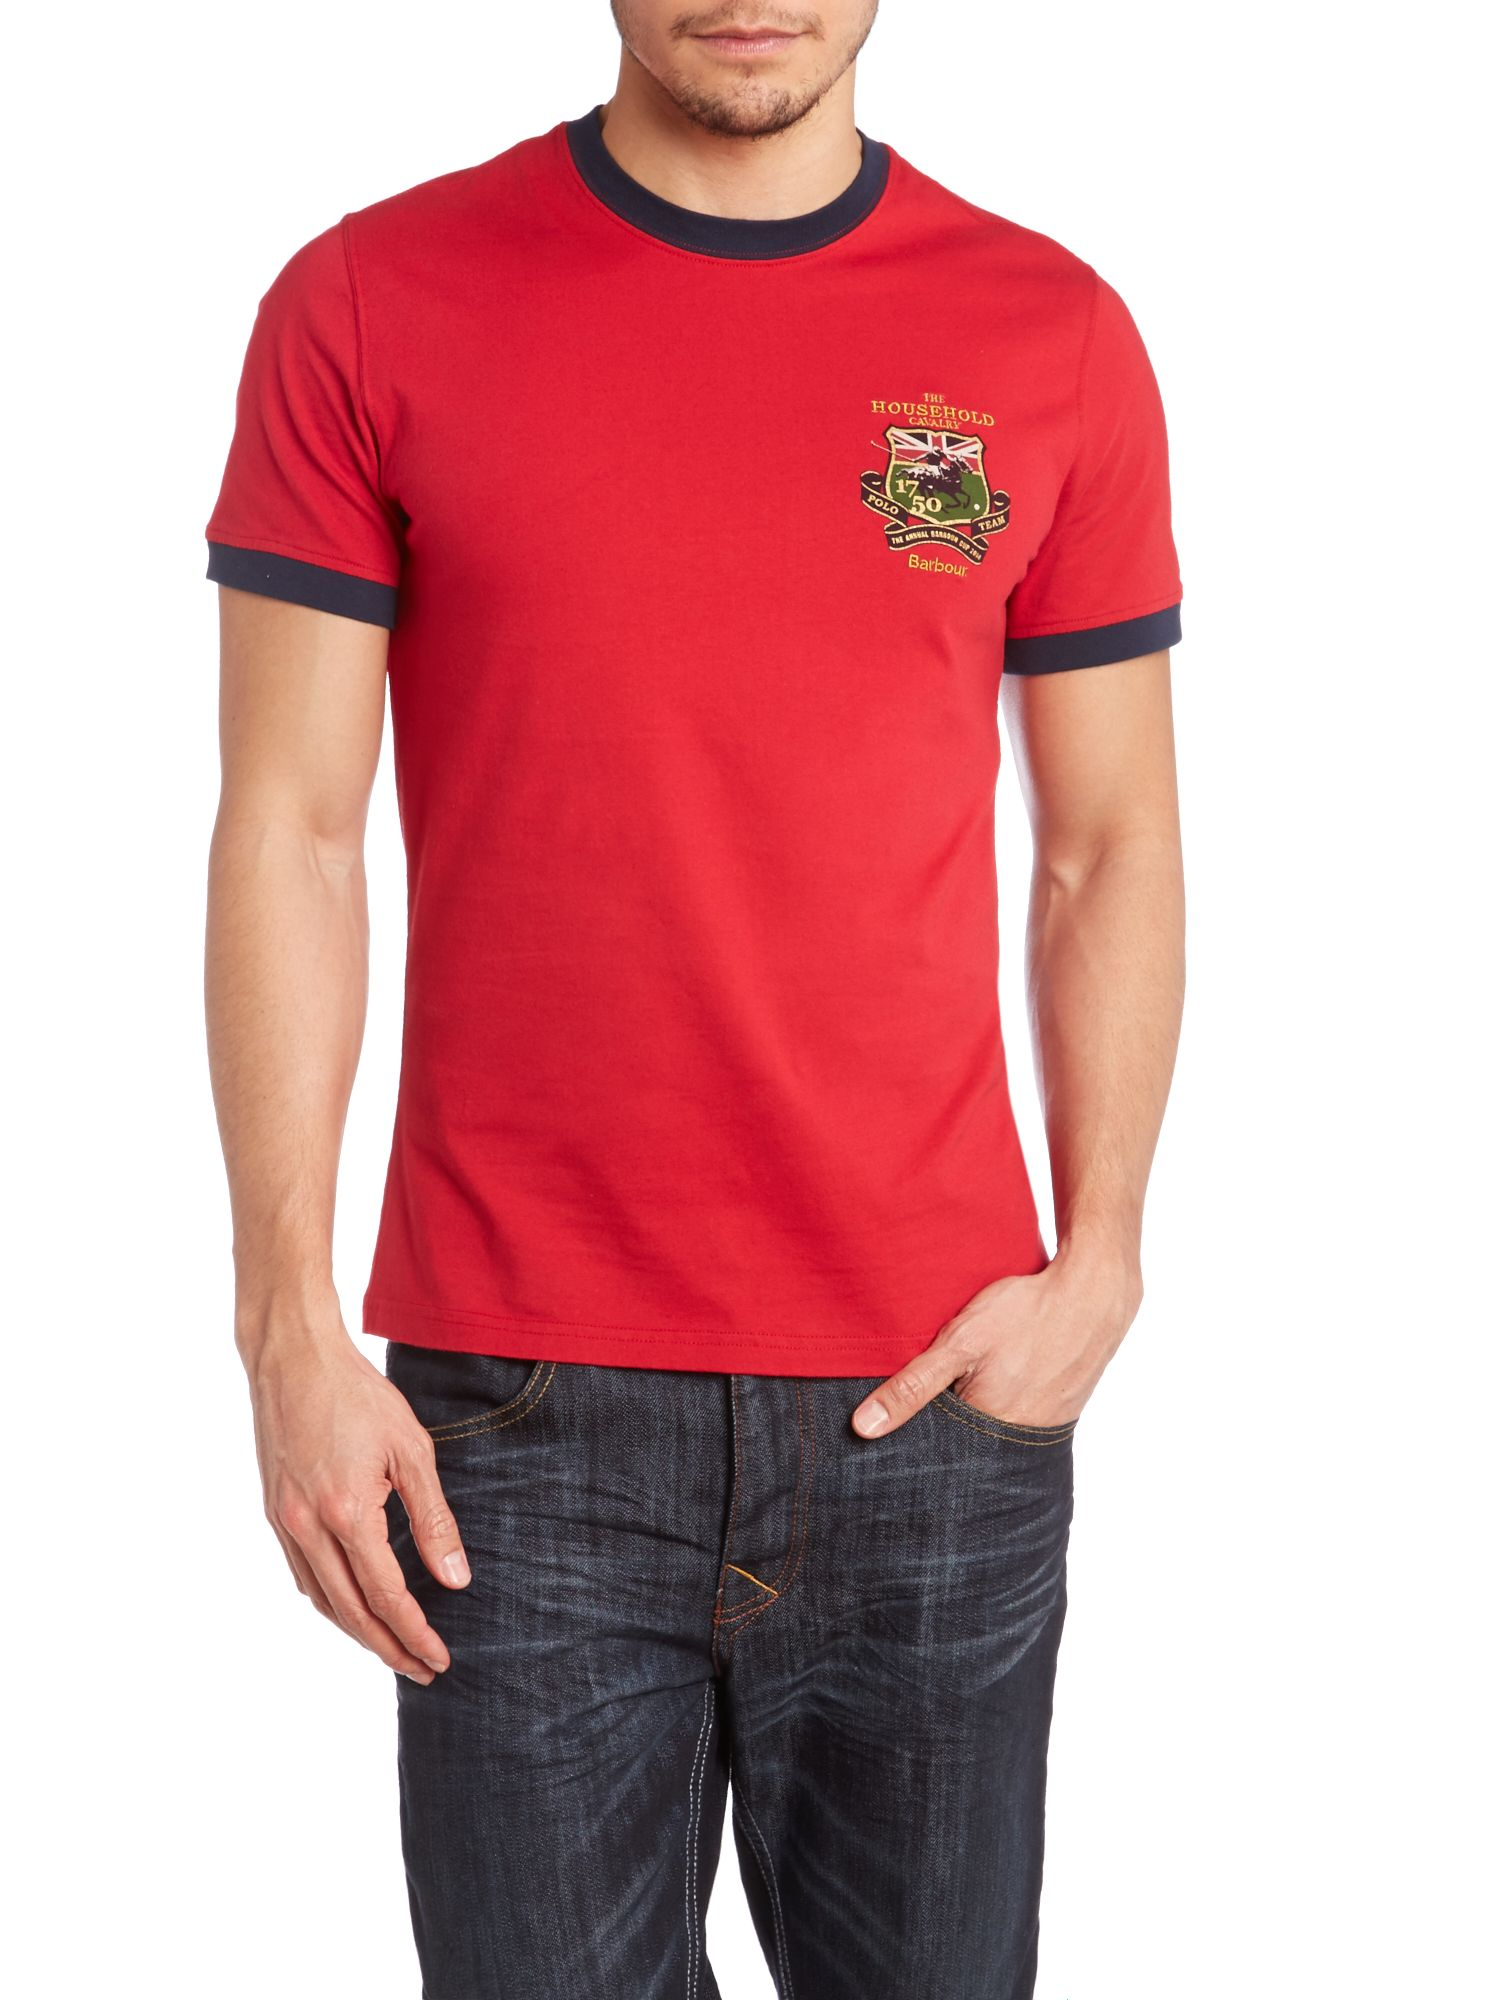 Captains shield print t-shirt